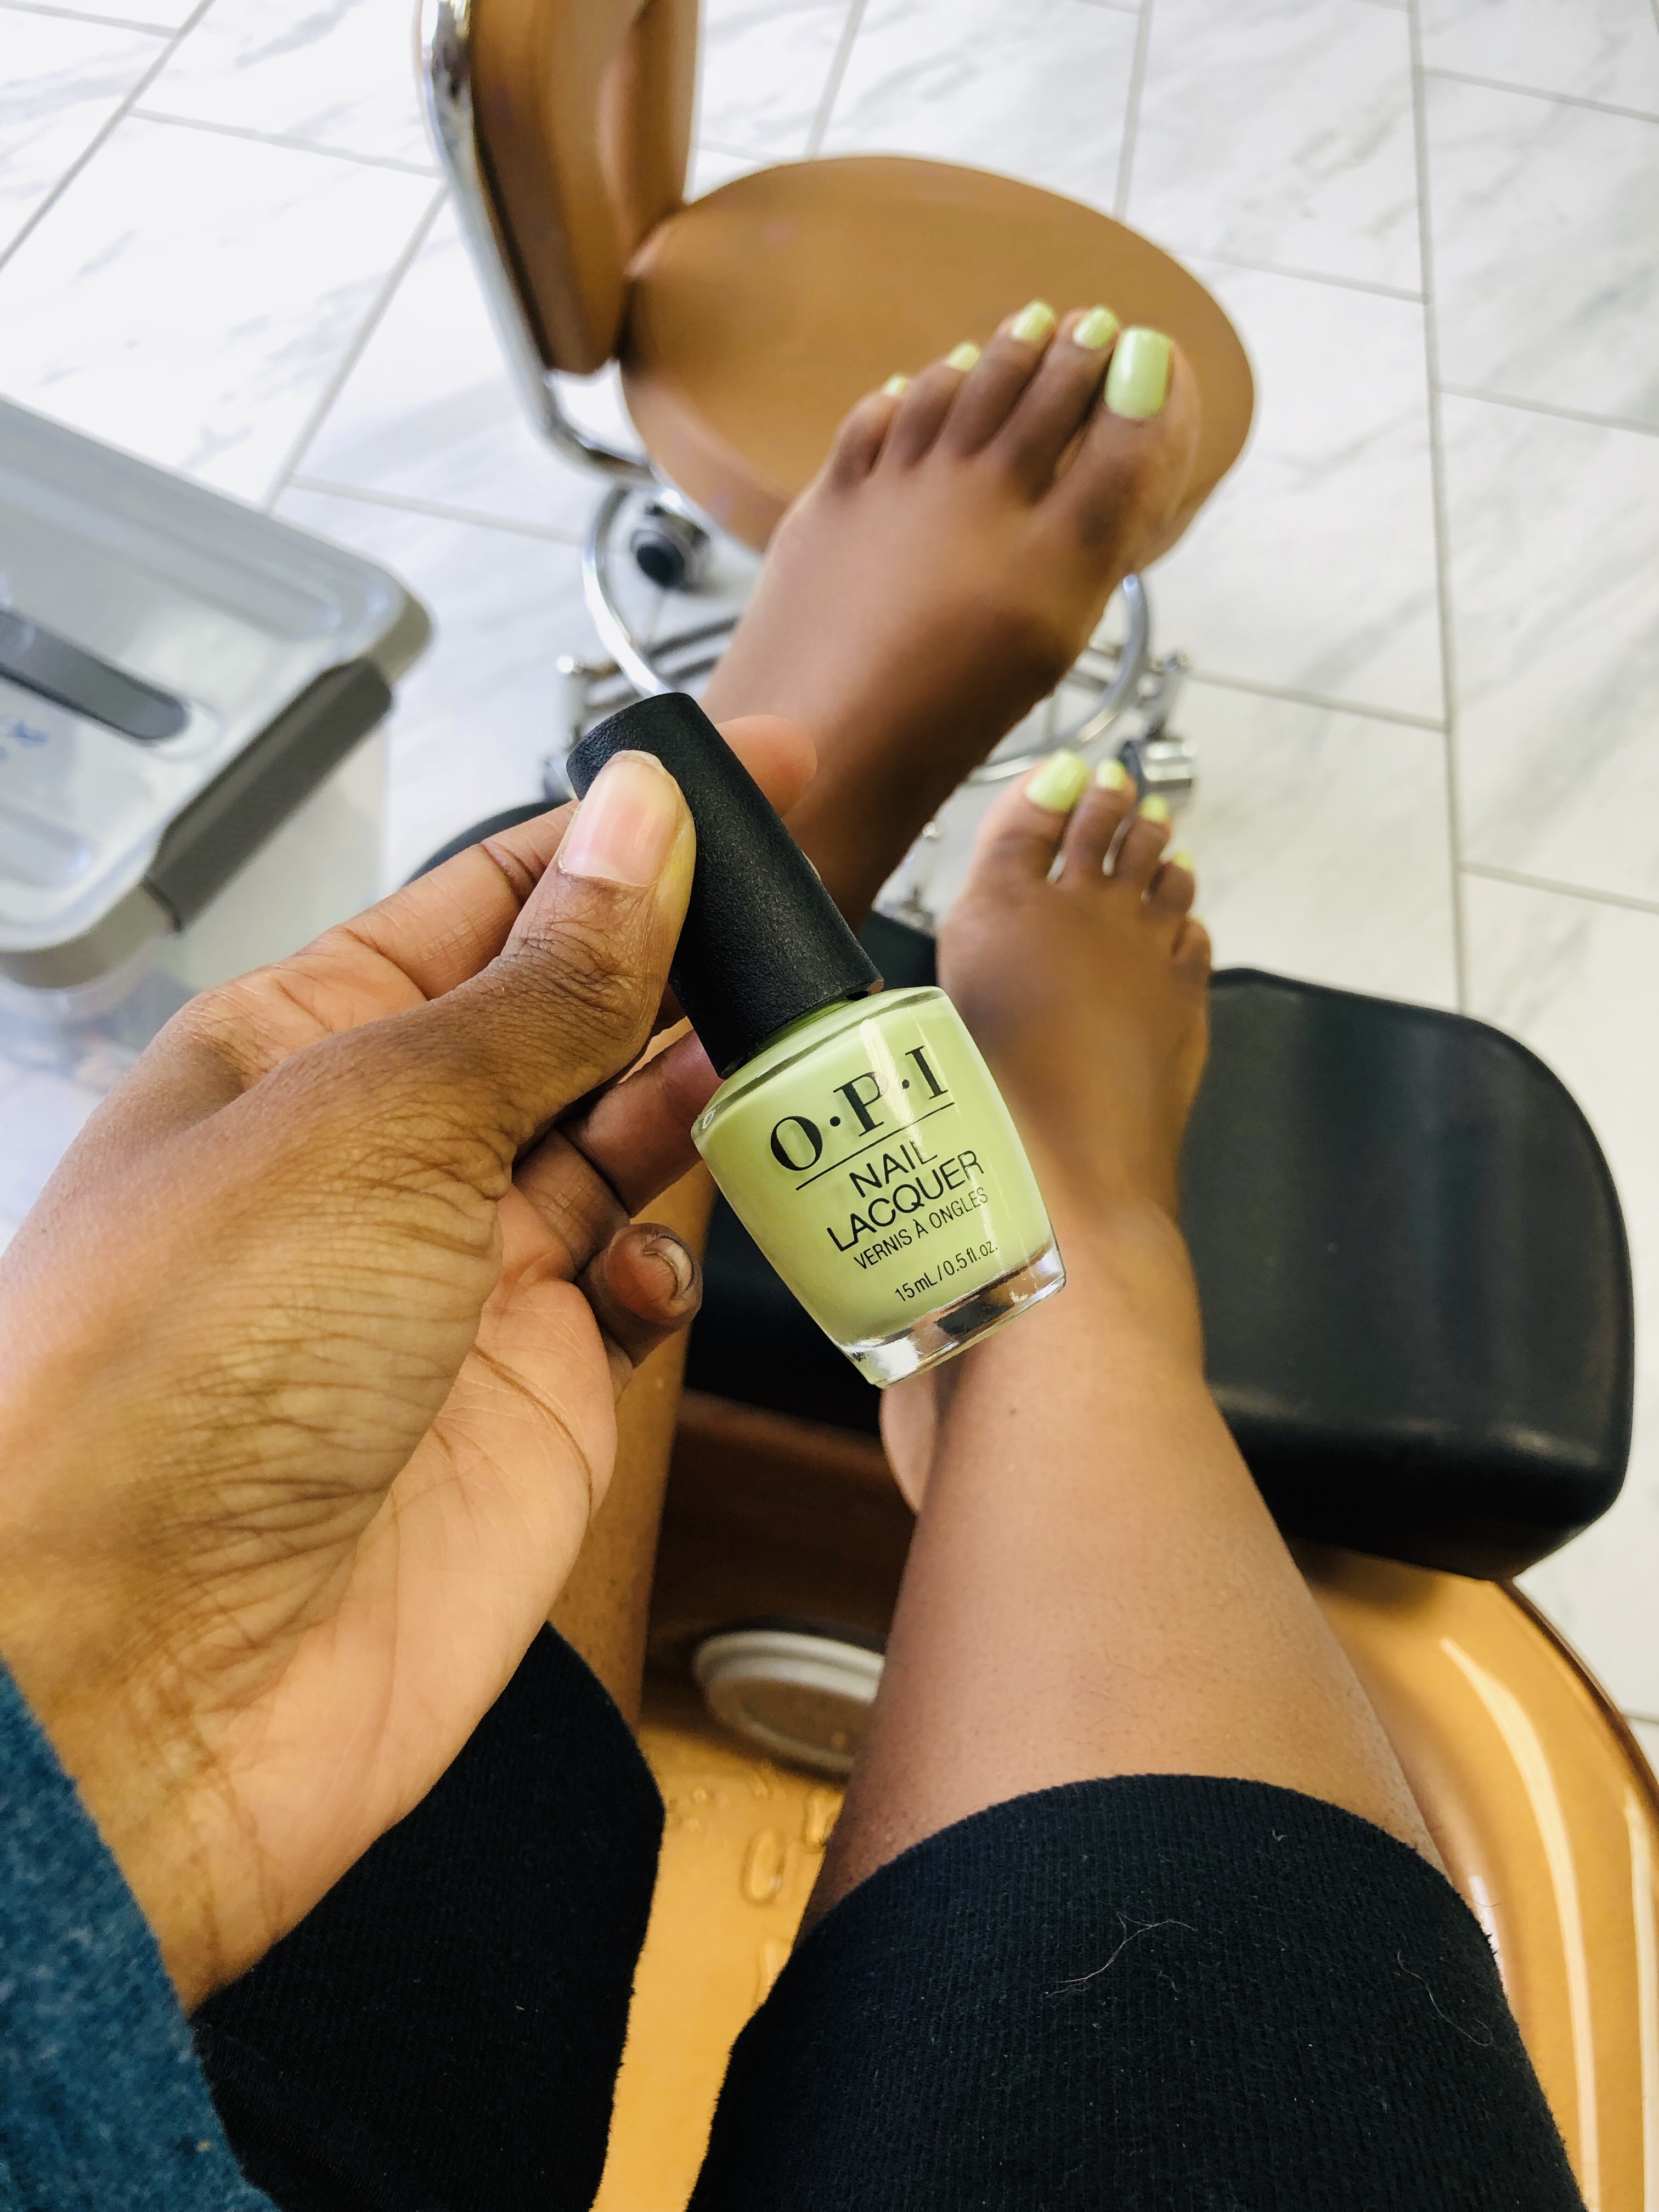 Get The Look: OPI Tokyo Spring/Summer 2019 Collection